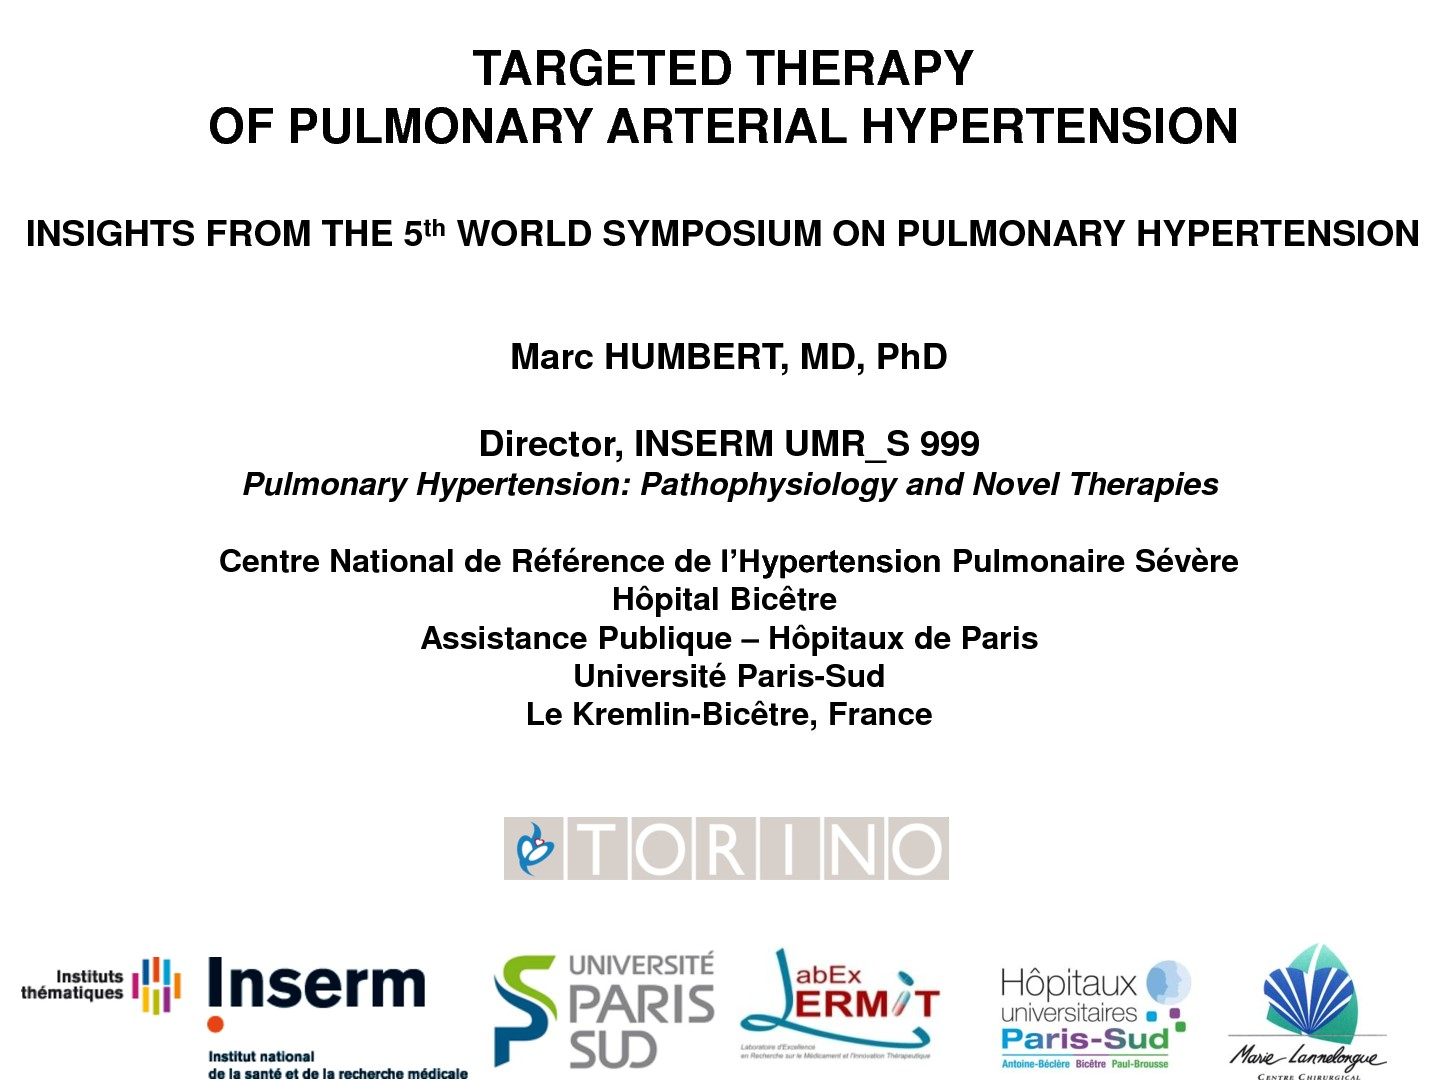 Targeted therapy of pulmonary arterial hypertension. Marc HUMBERT